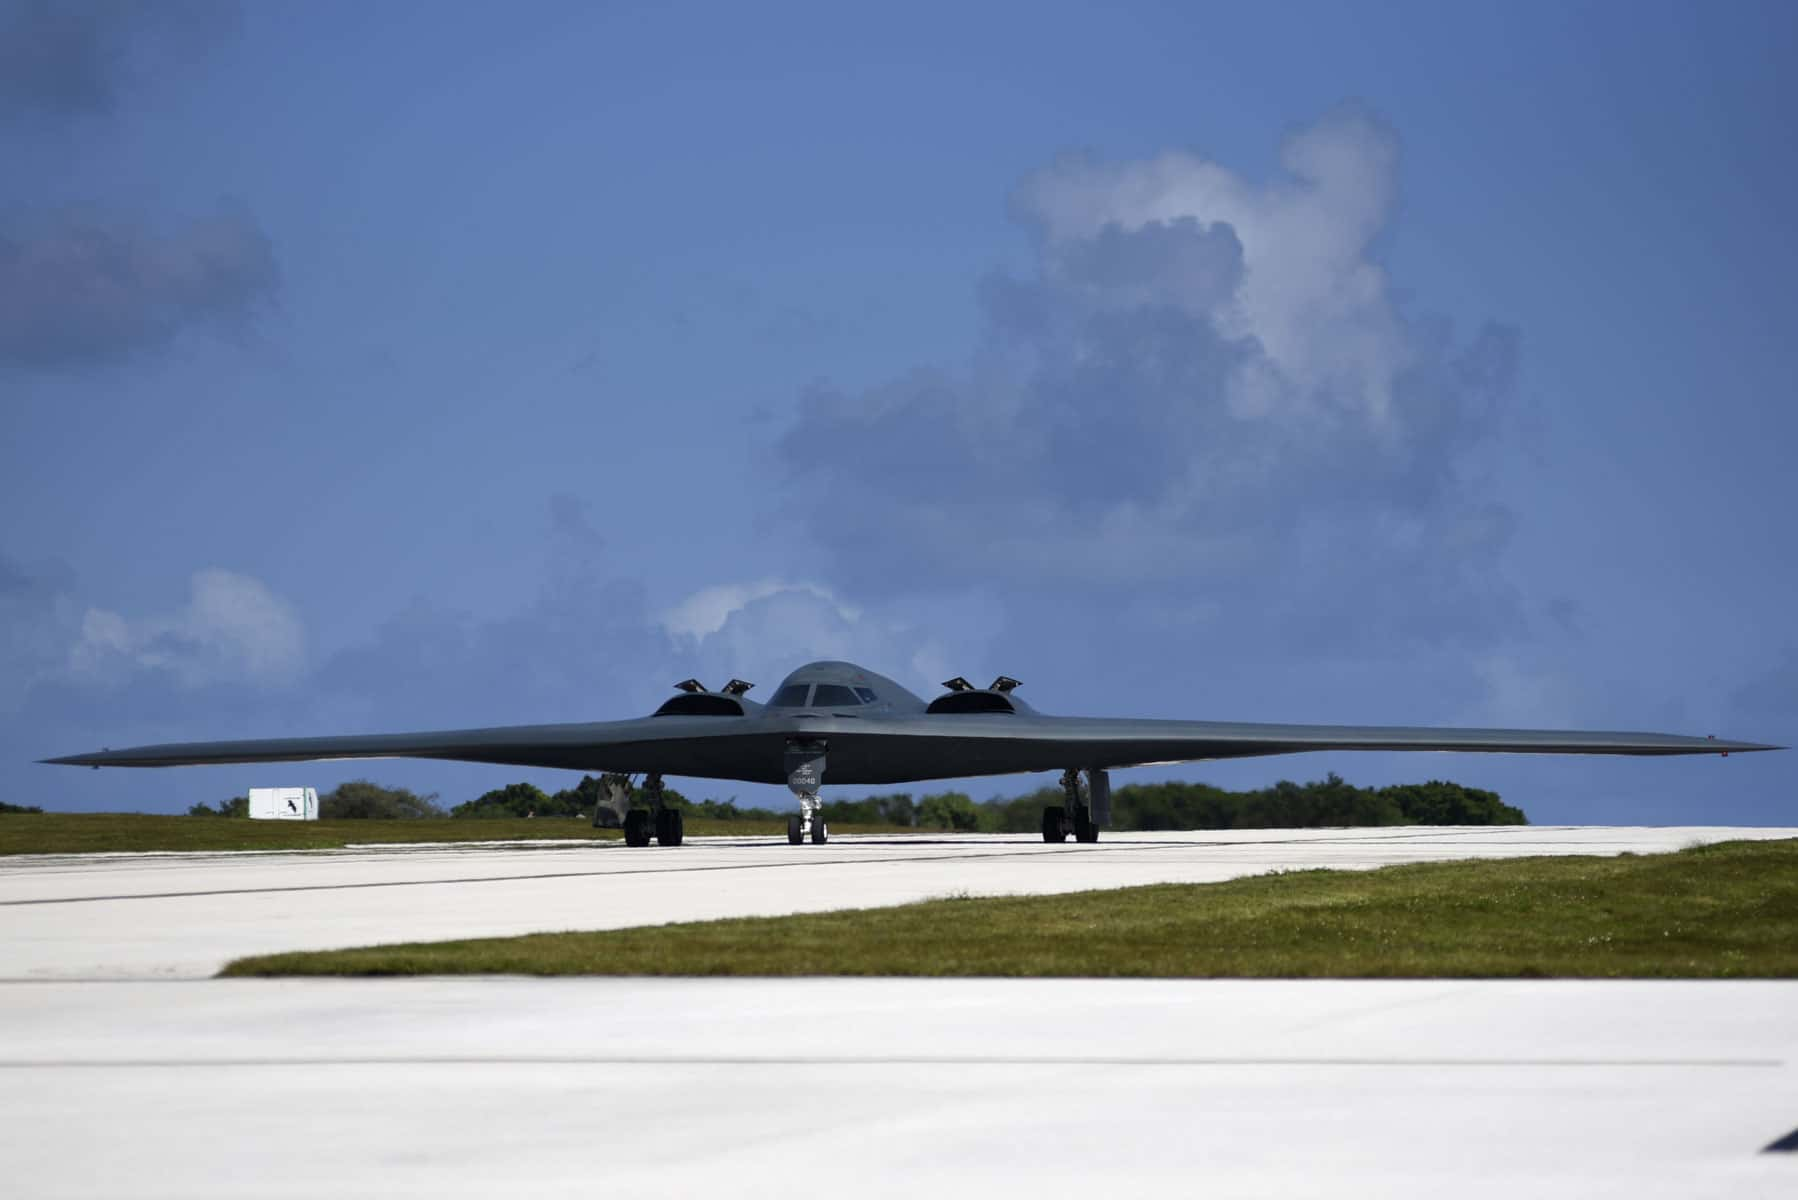 U.S. Air Force B-2 Spirit